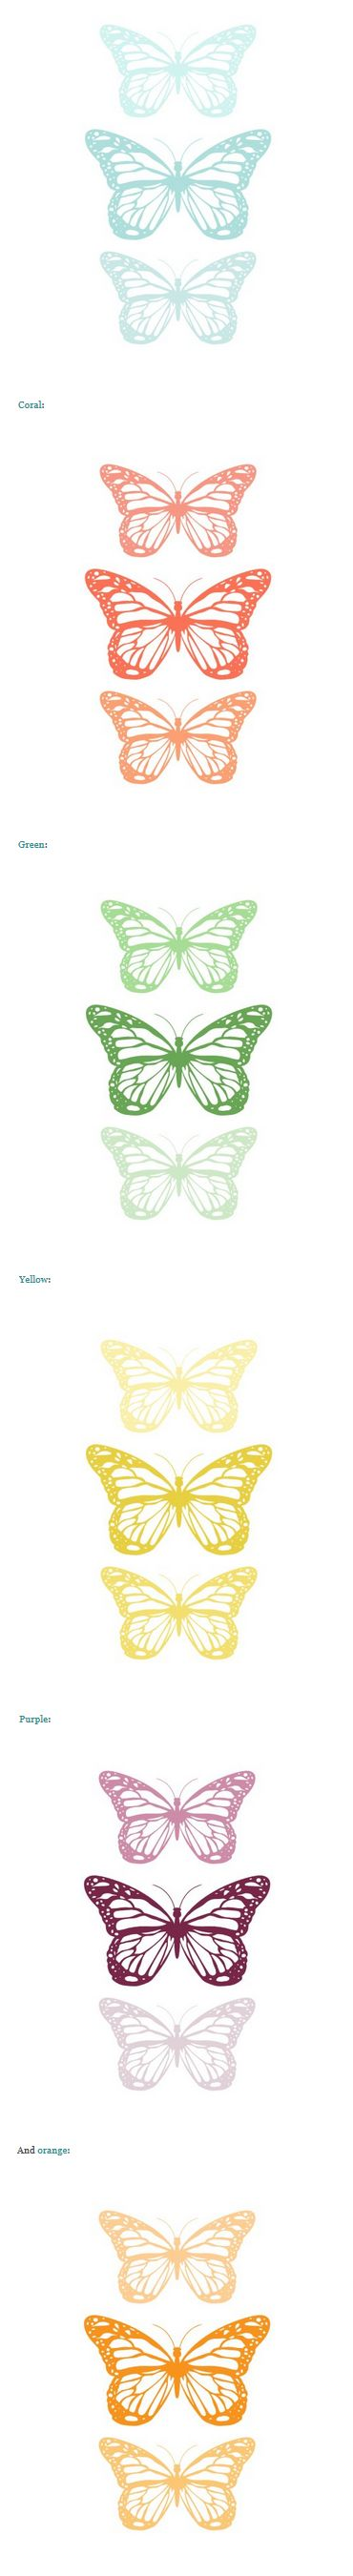 best 25 printable butterfly ideas on pinterest butterfly art